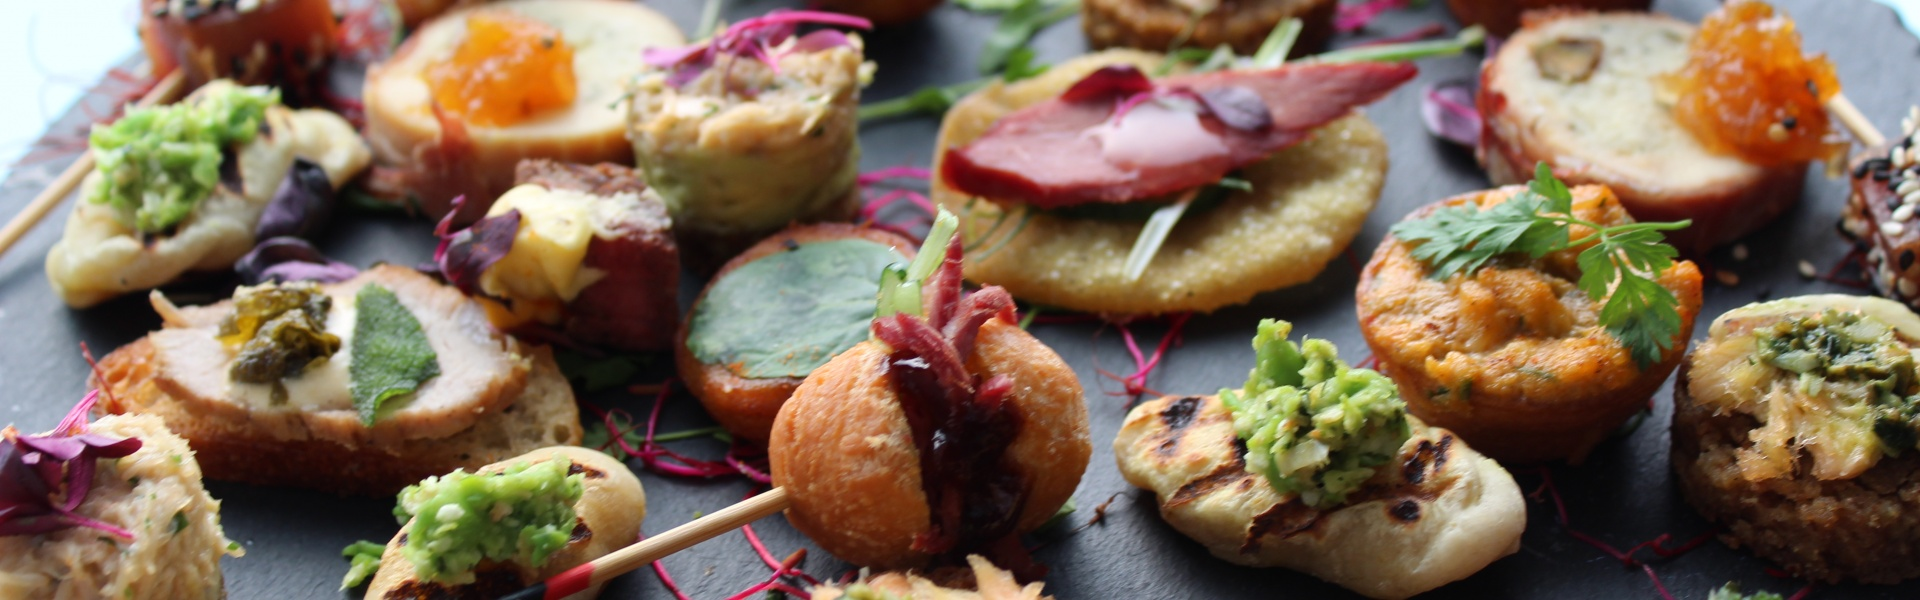 canape catering London